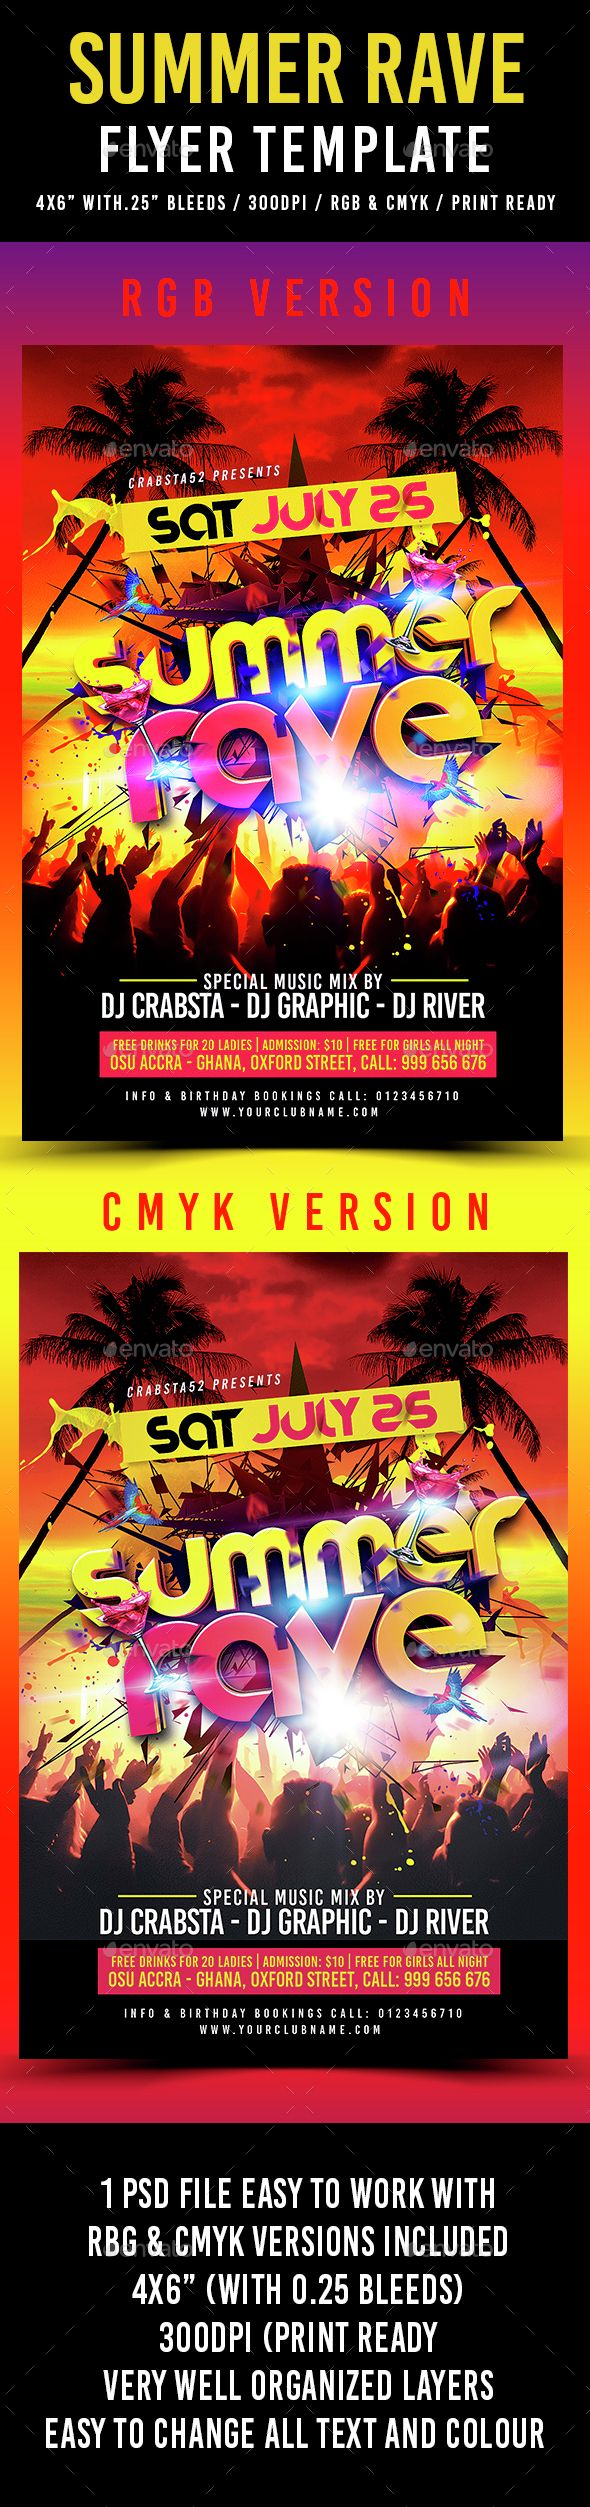 summer rave flyer template psd download here http graphicriver